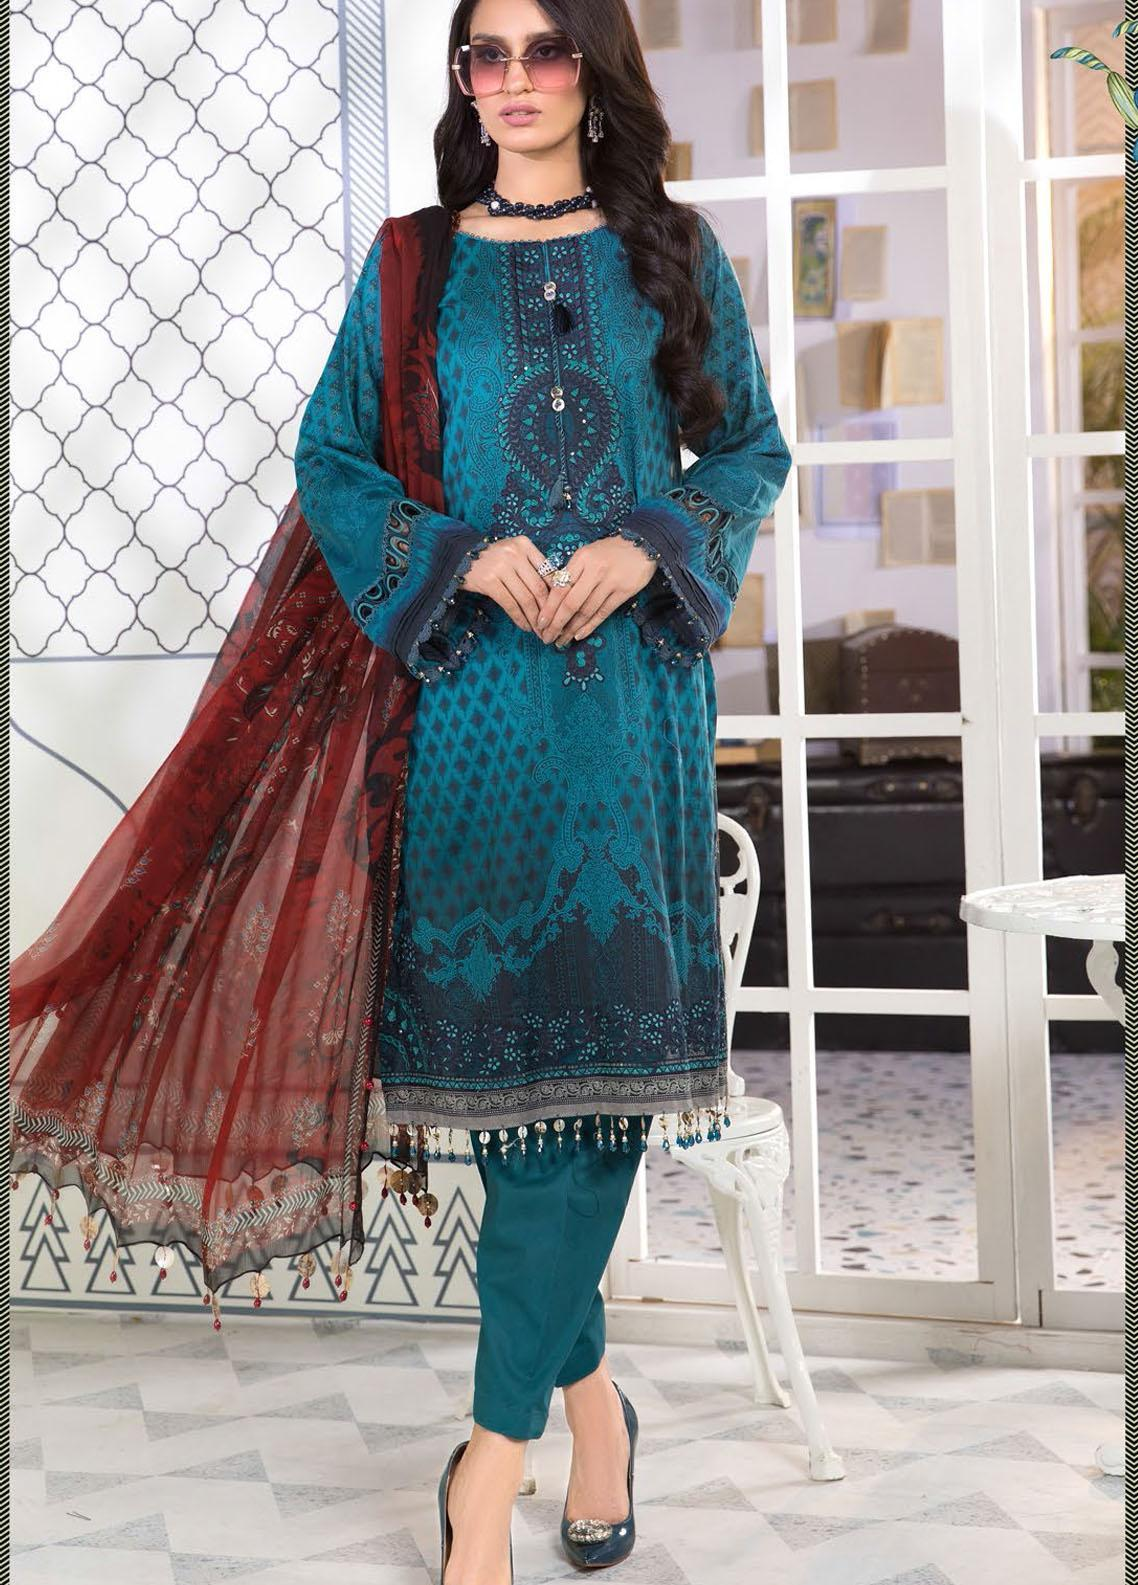 Mprints By Maria B Printed Lawn Suits Unstitched 3 Piece MB21-MP2 1101-B - Summer Collection